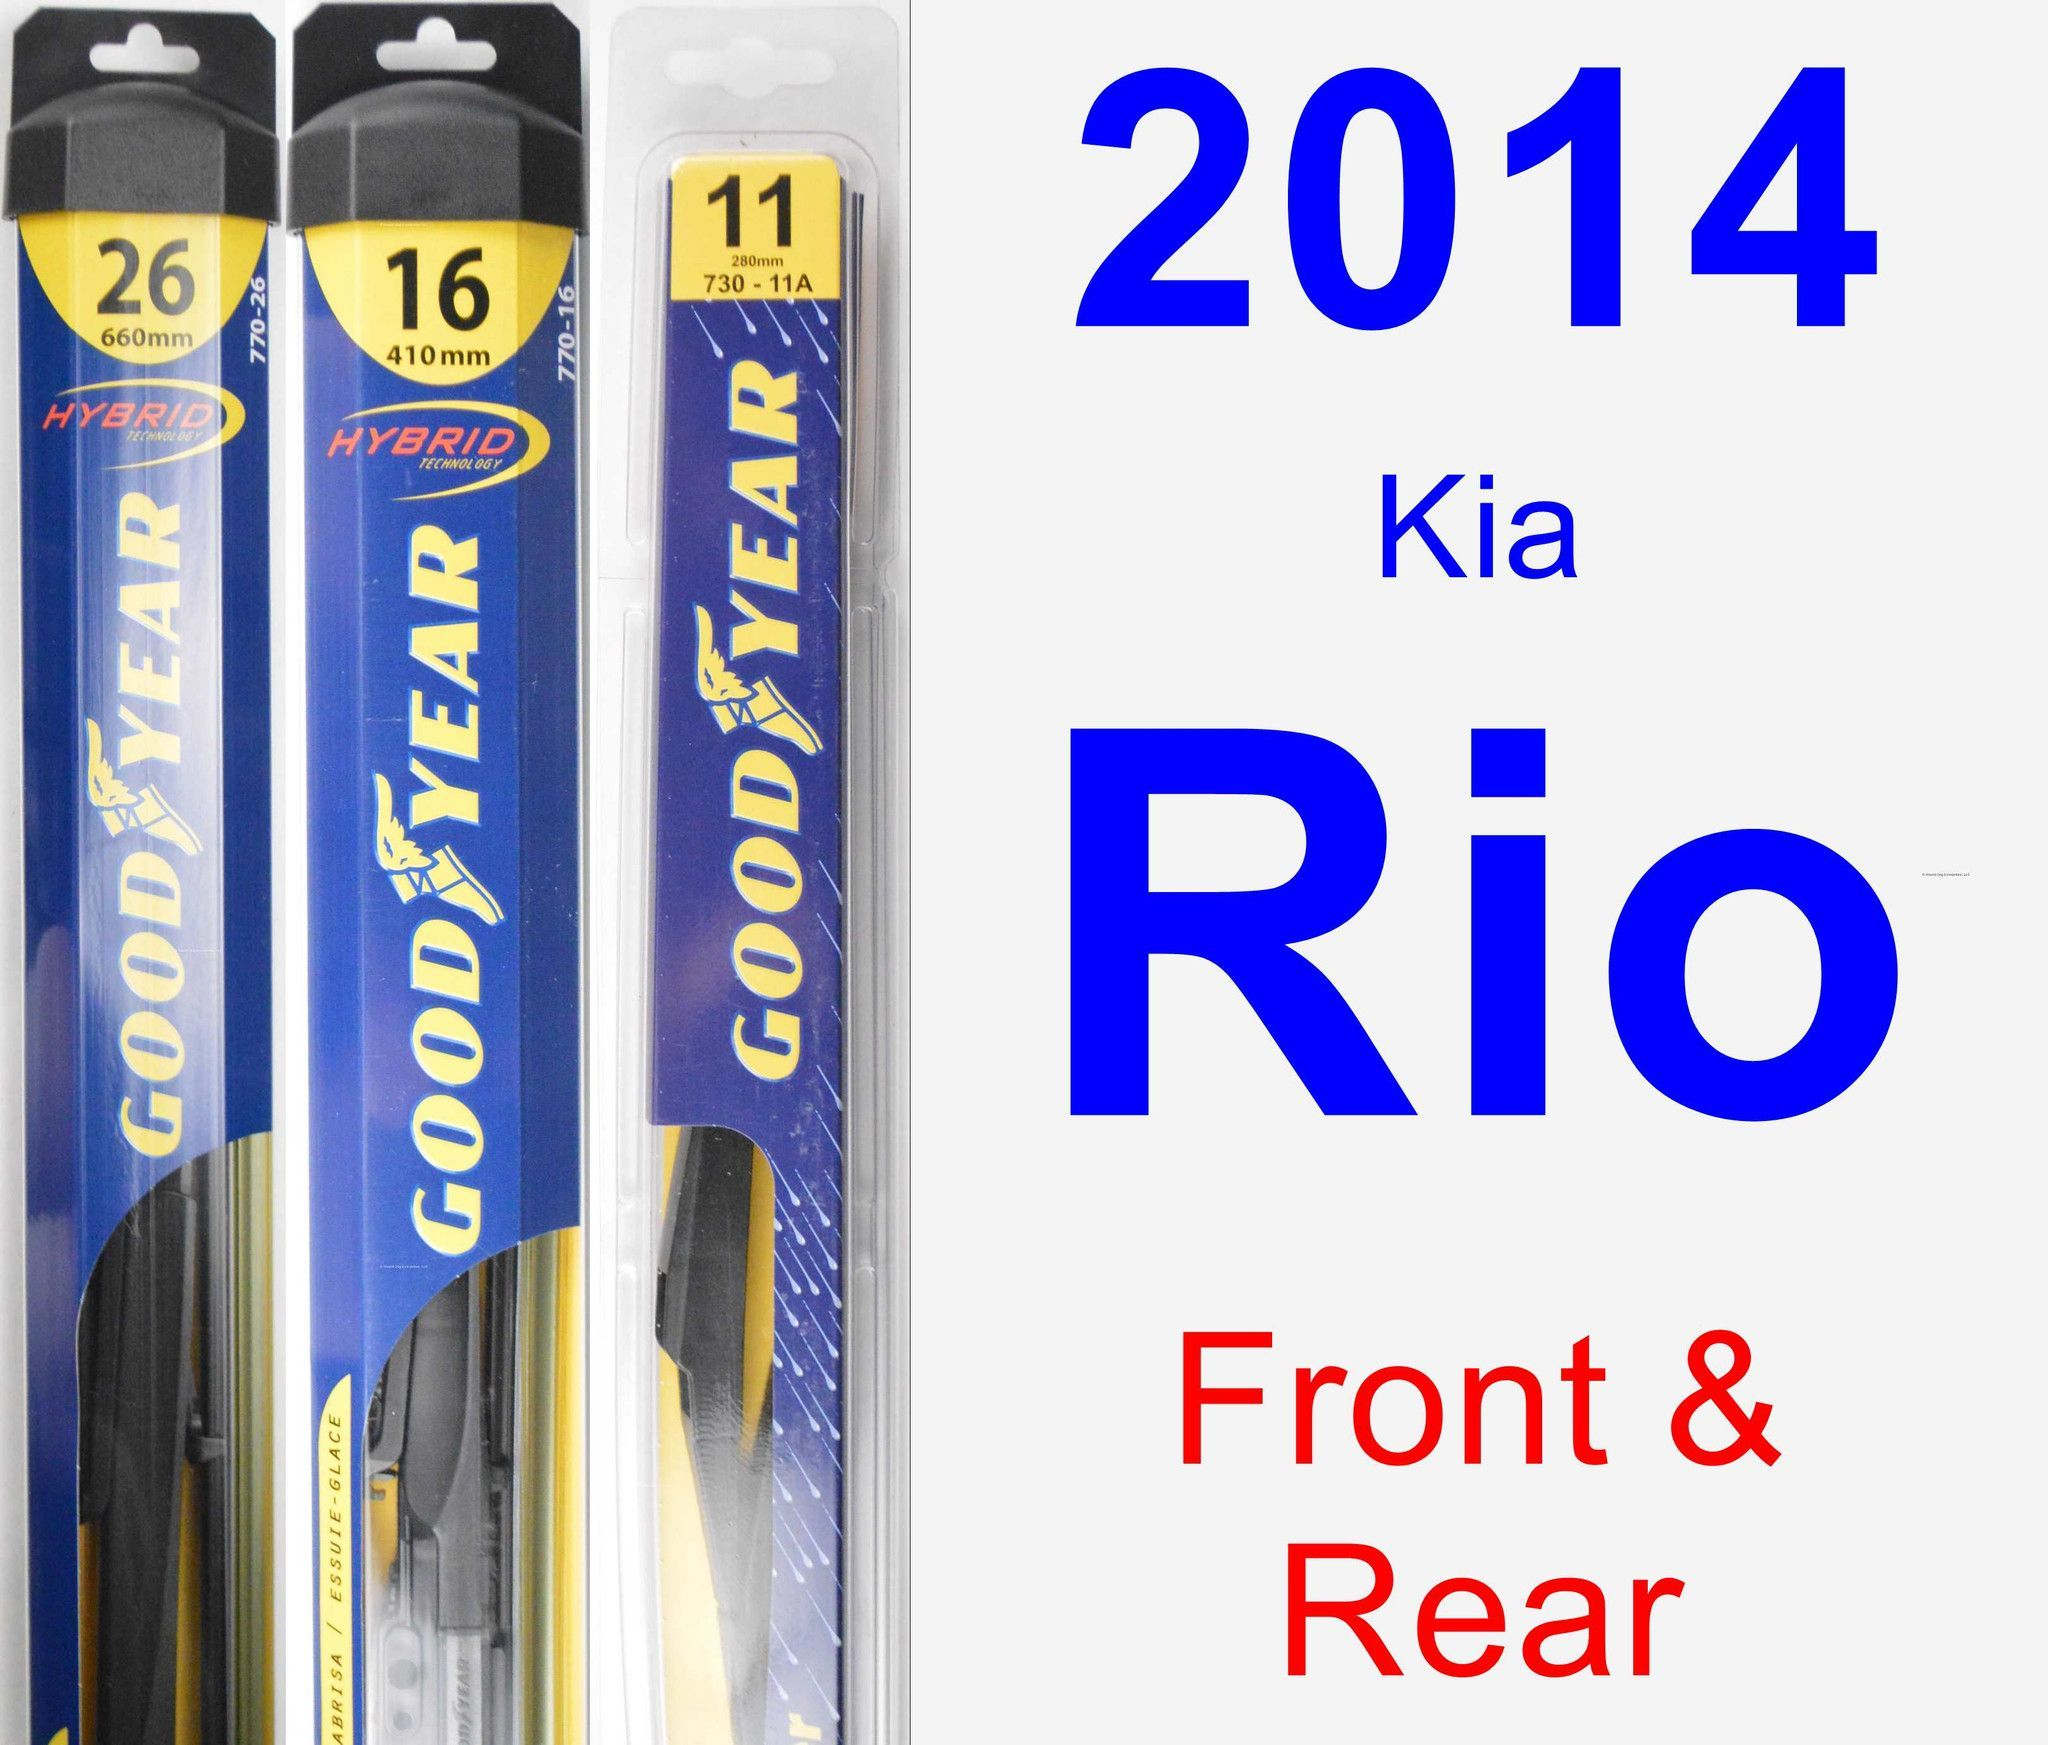 Front & Rear Wiper Blade Pack For 2014 Kia Rio